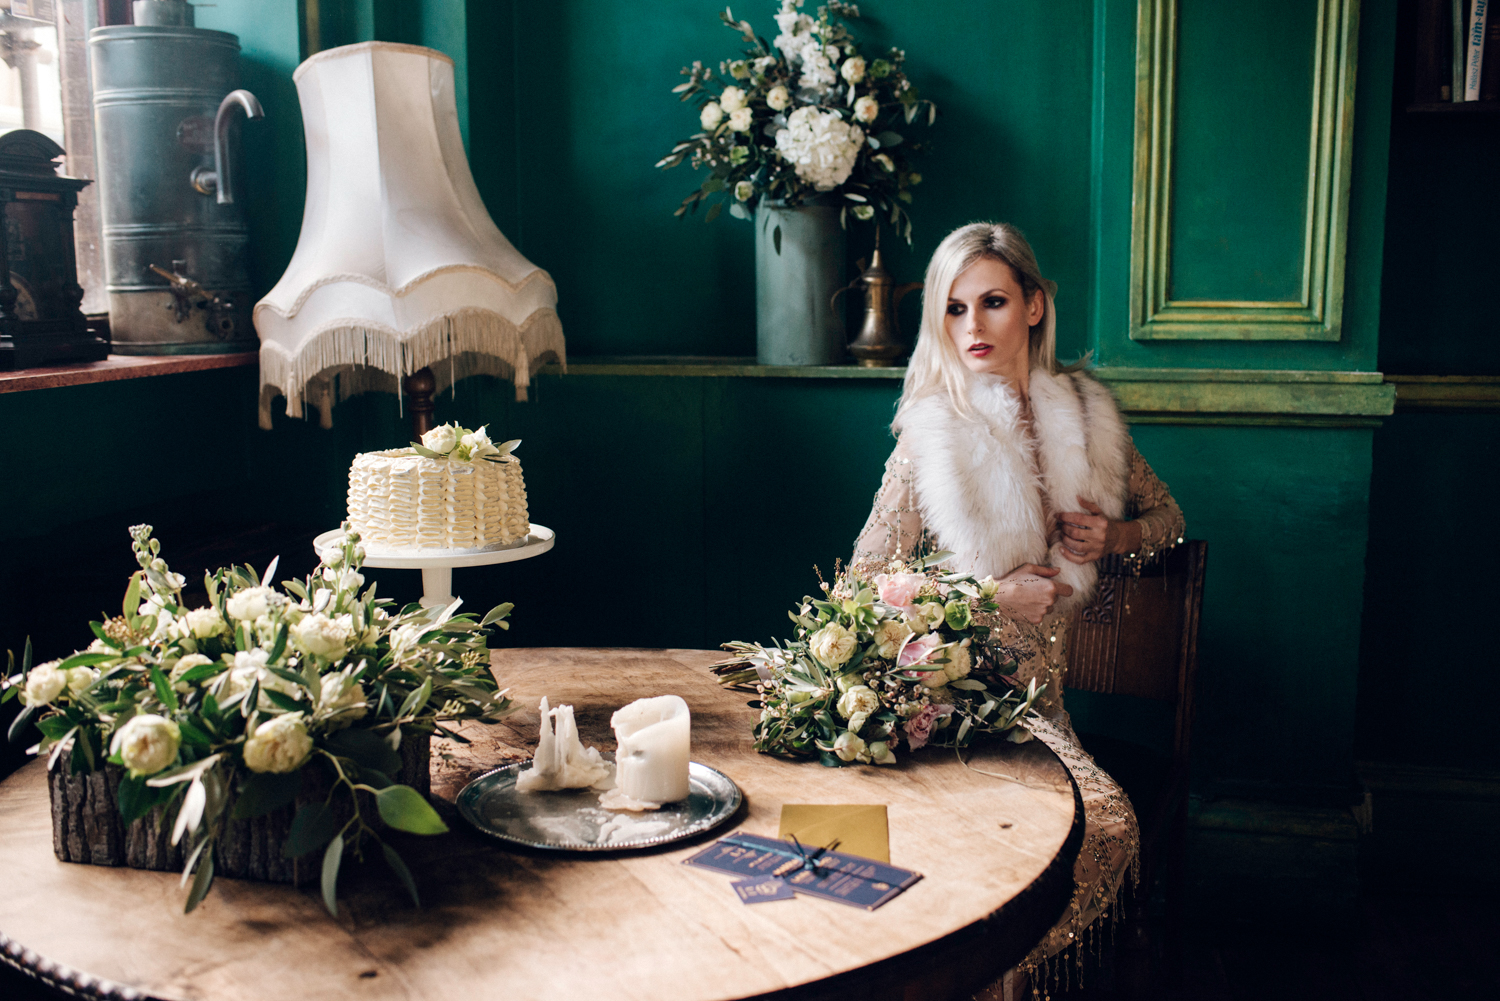 Margo Ryszczuk Photography - Its all about the glitter, sparkle and shine art deco inspired wedding shoot 87745634875